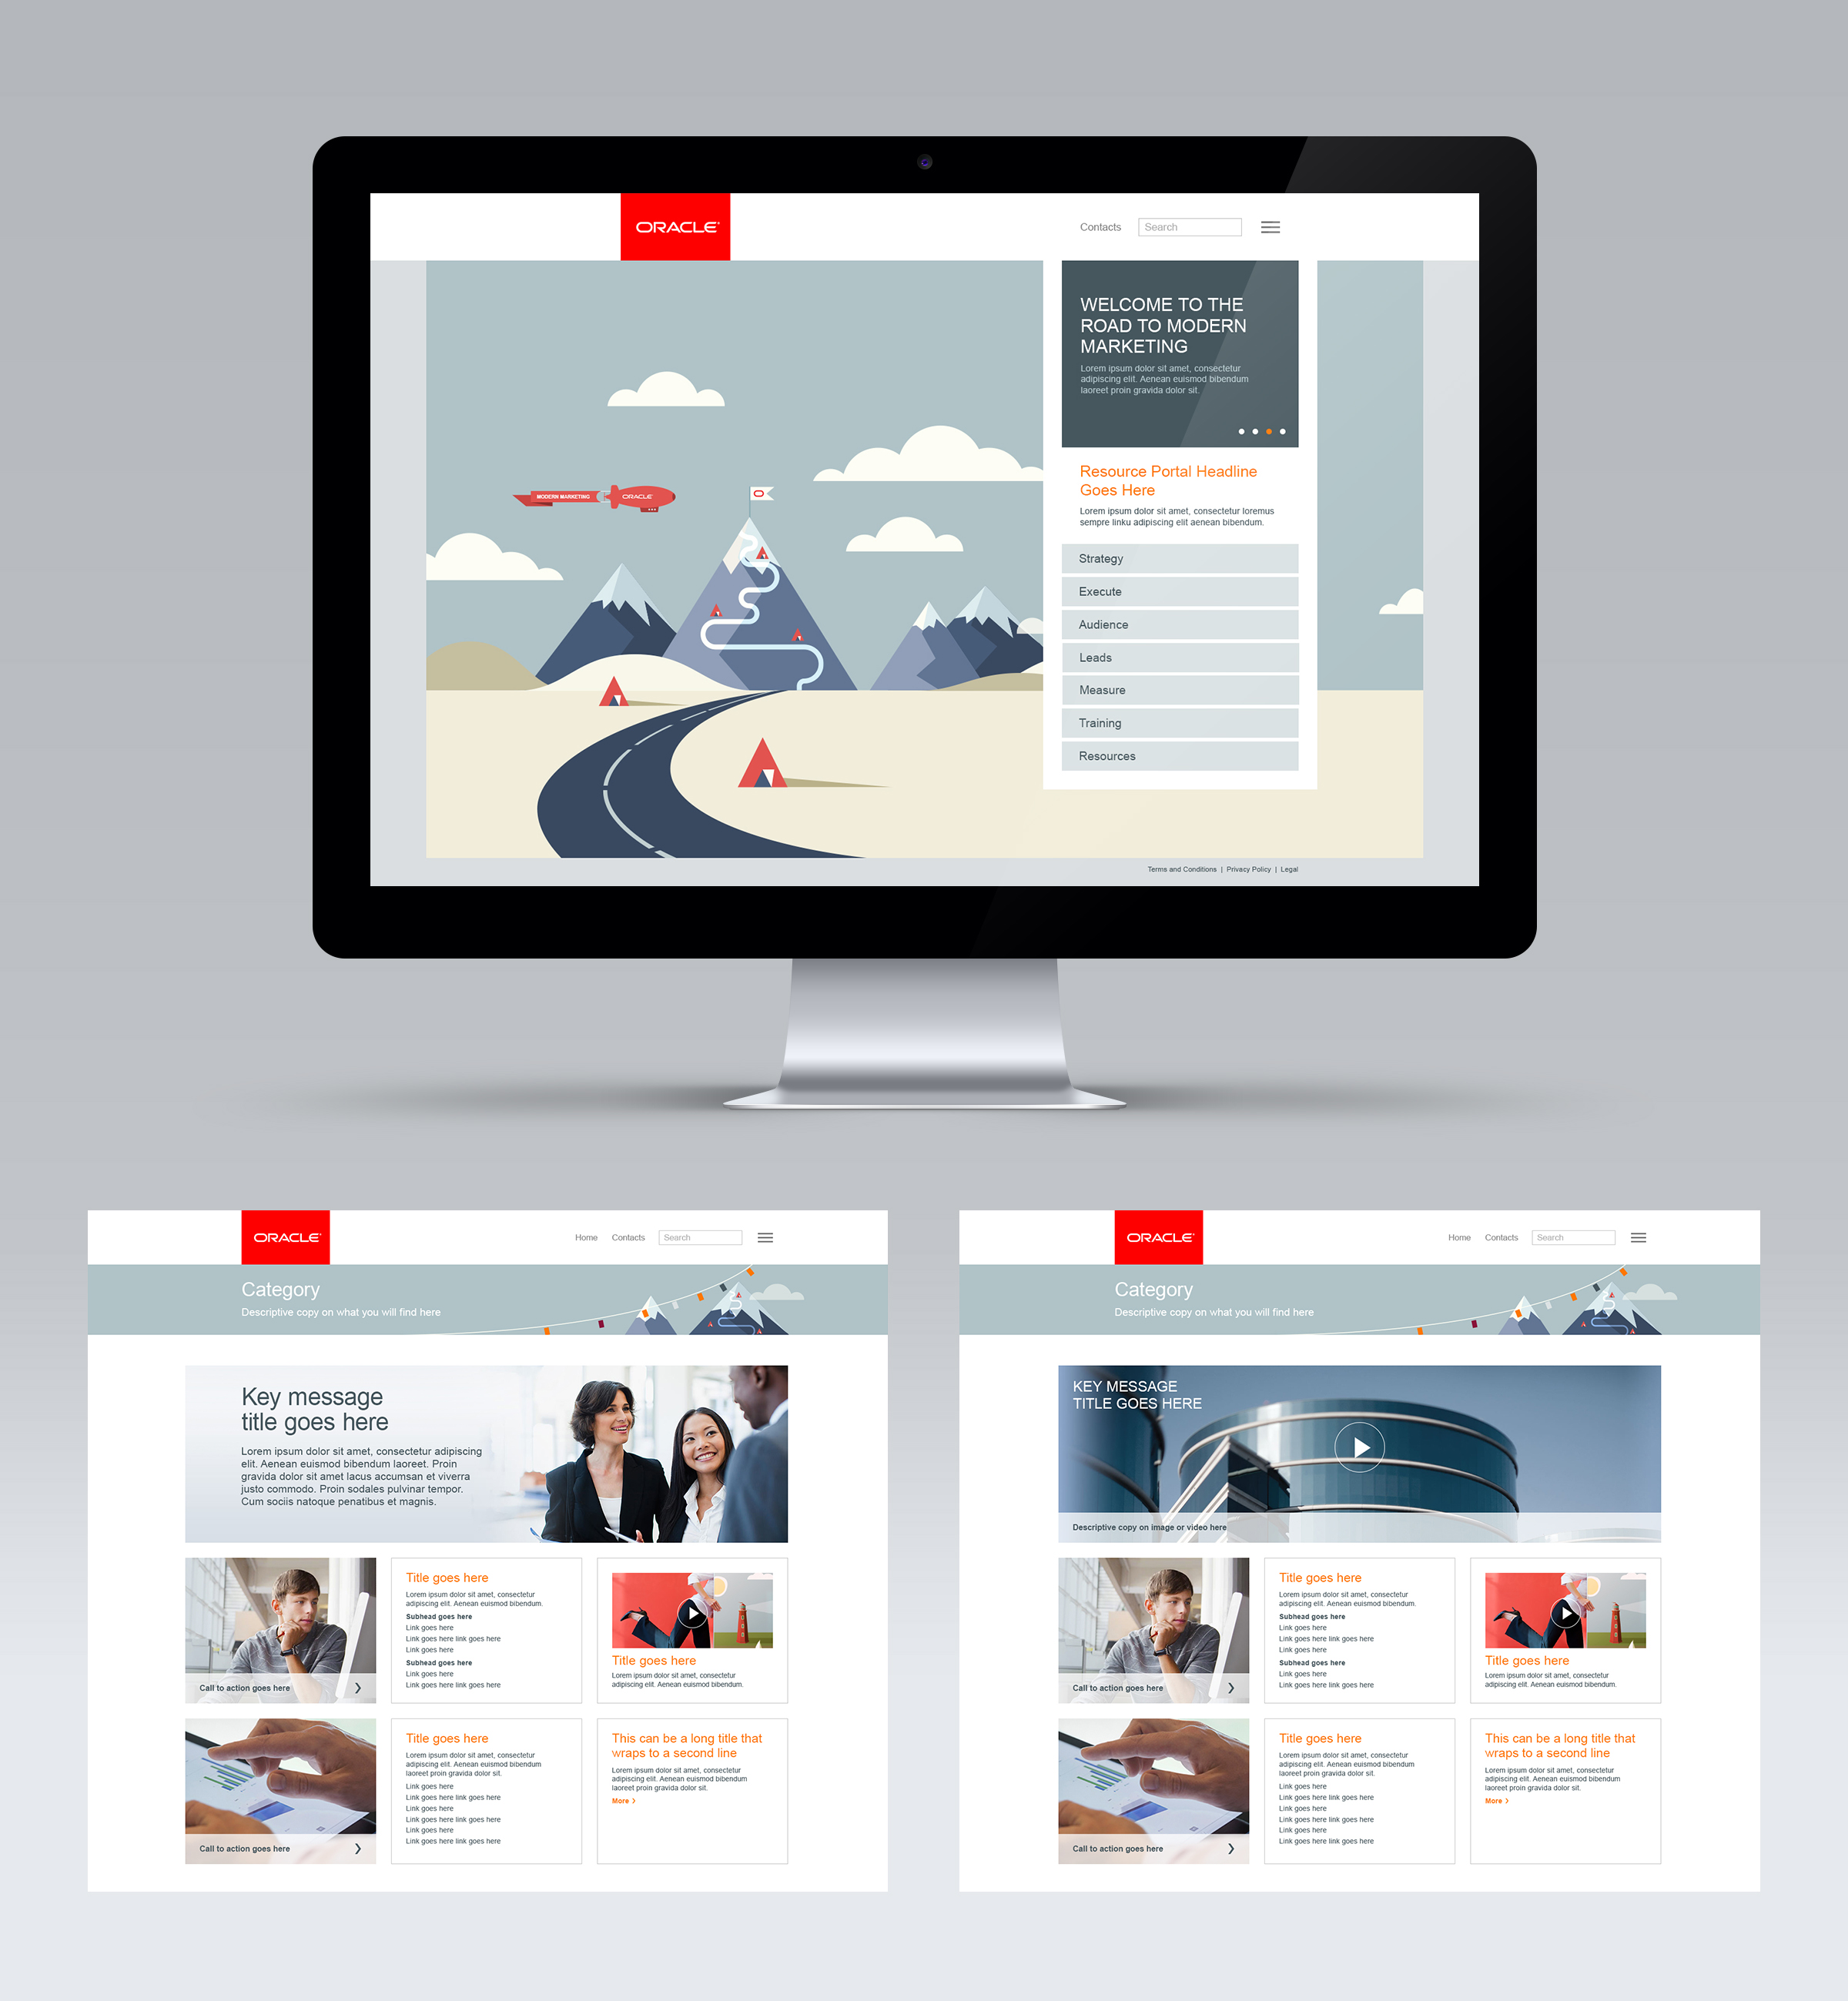 Oracle_Website-Mock-up.jpg